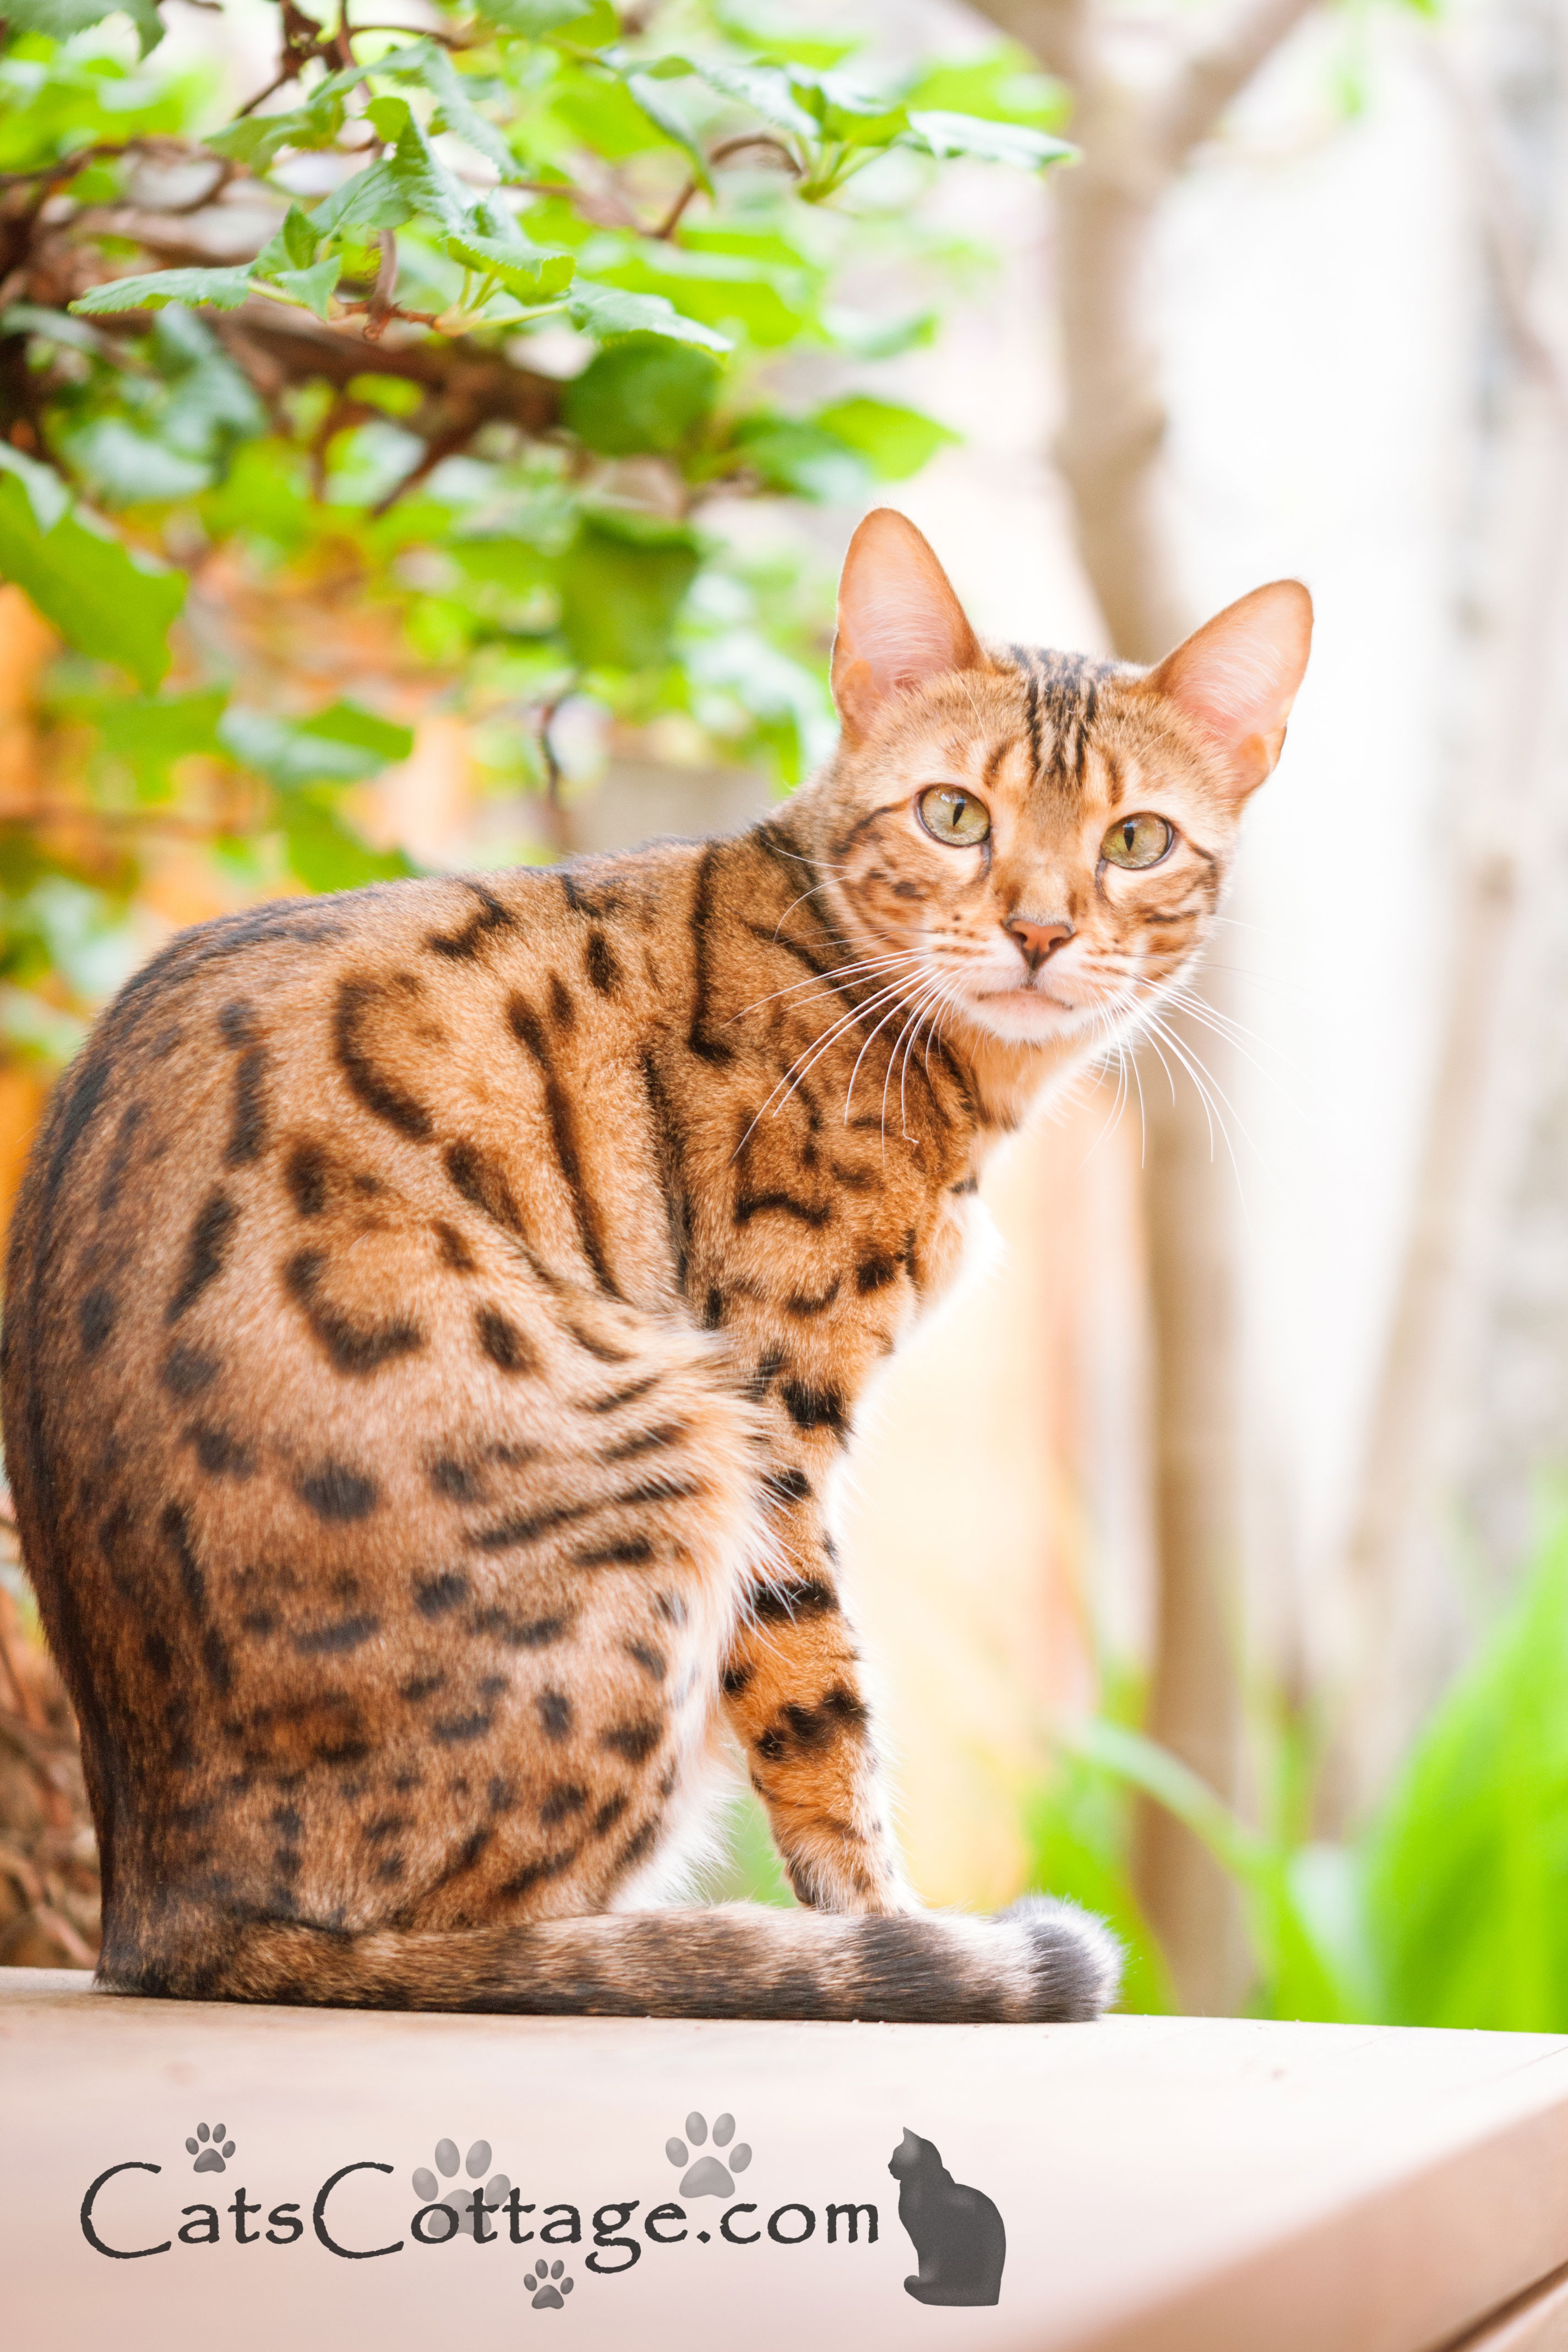 The Bengal cat rarely sits still.